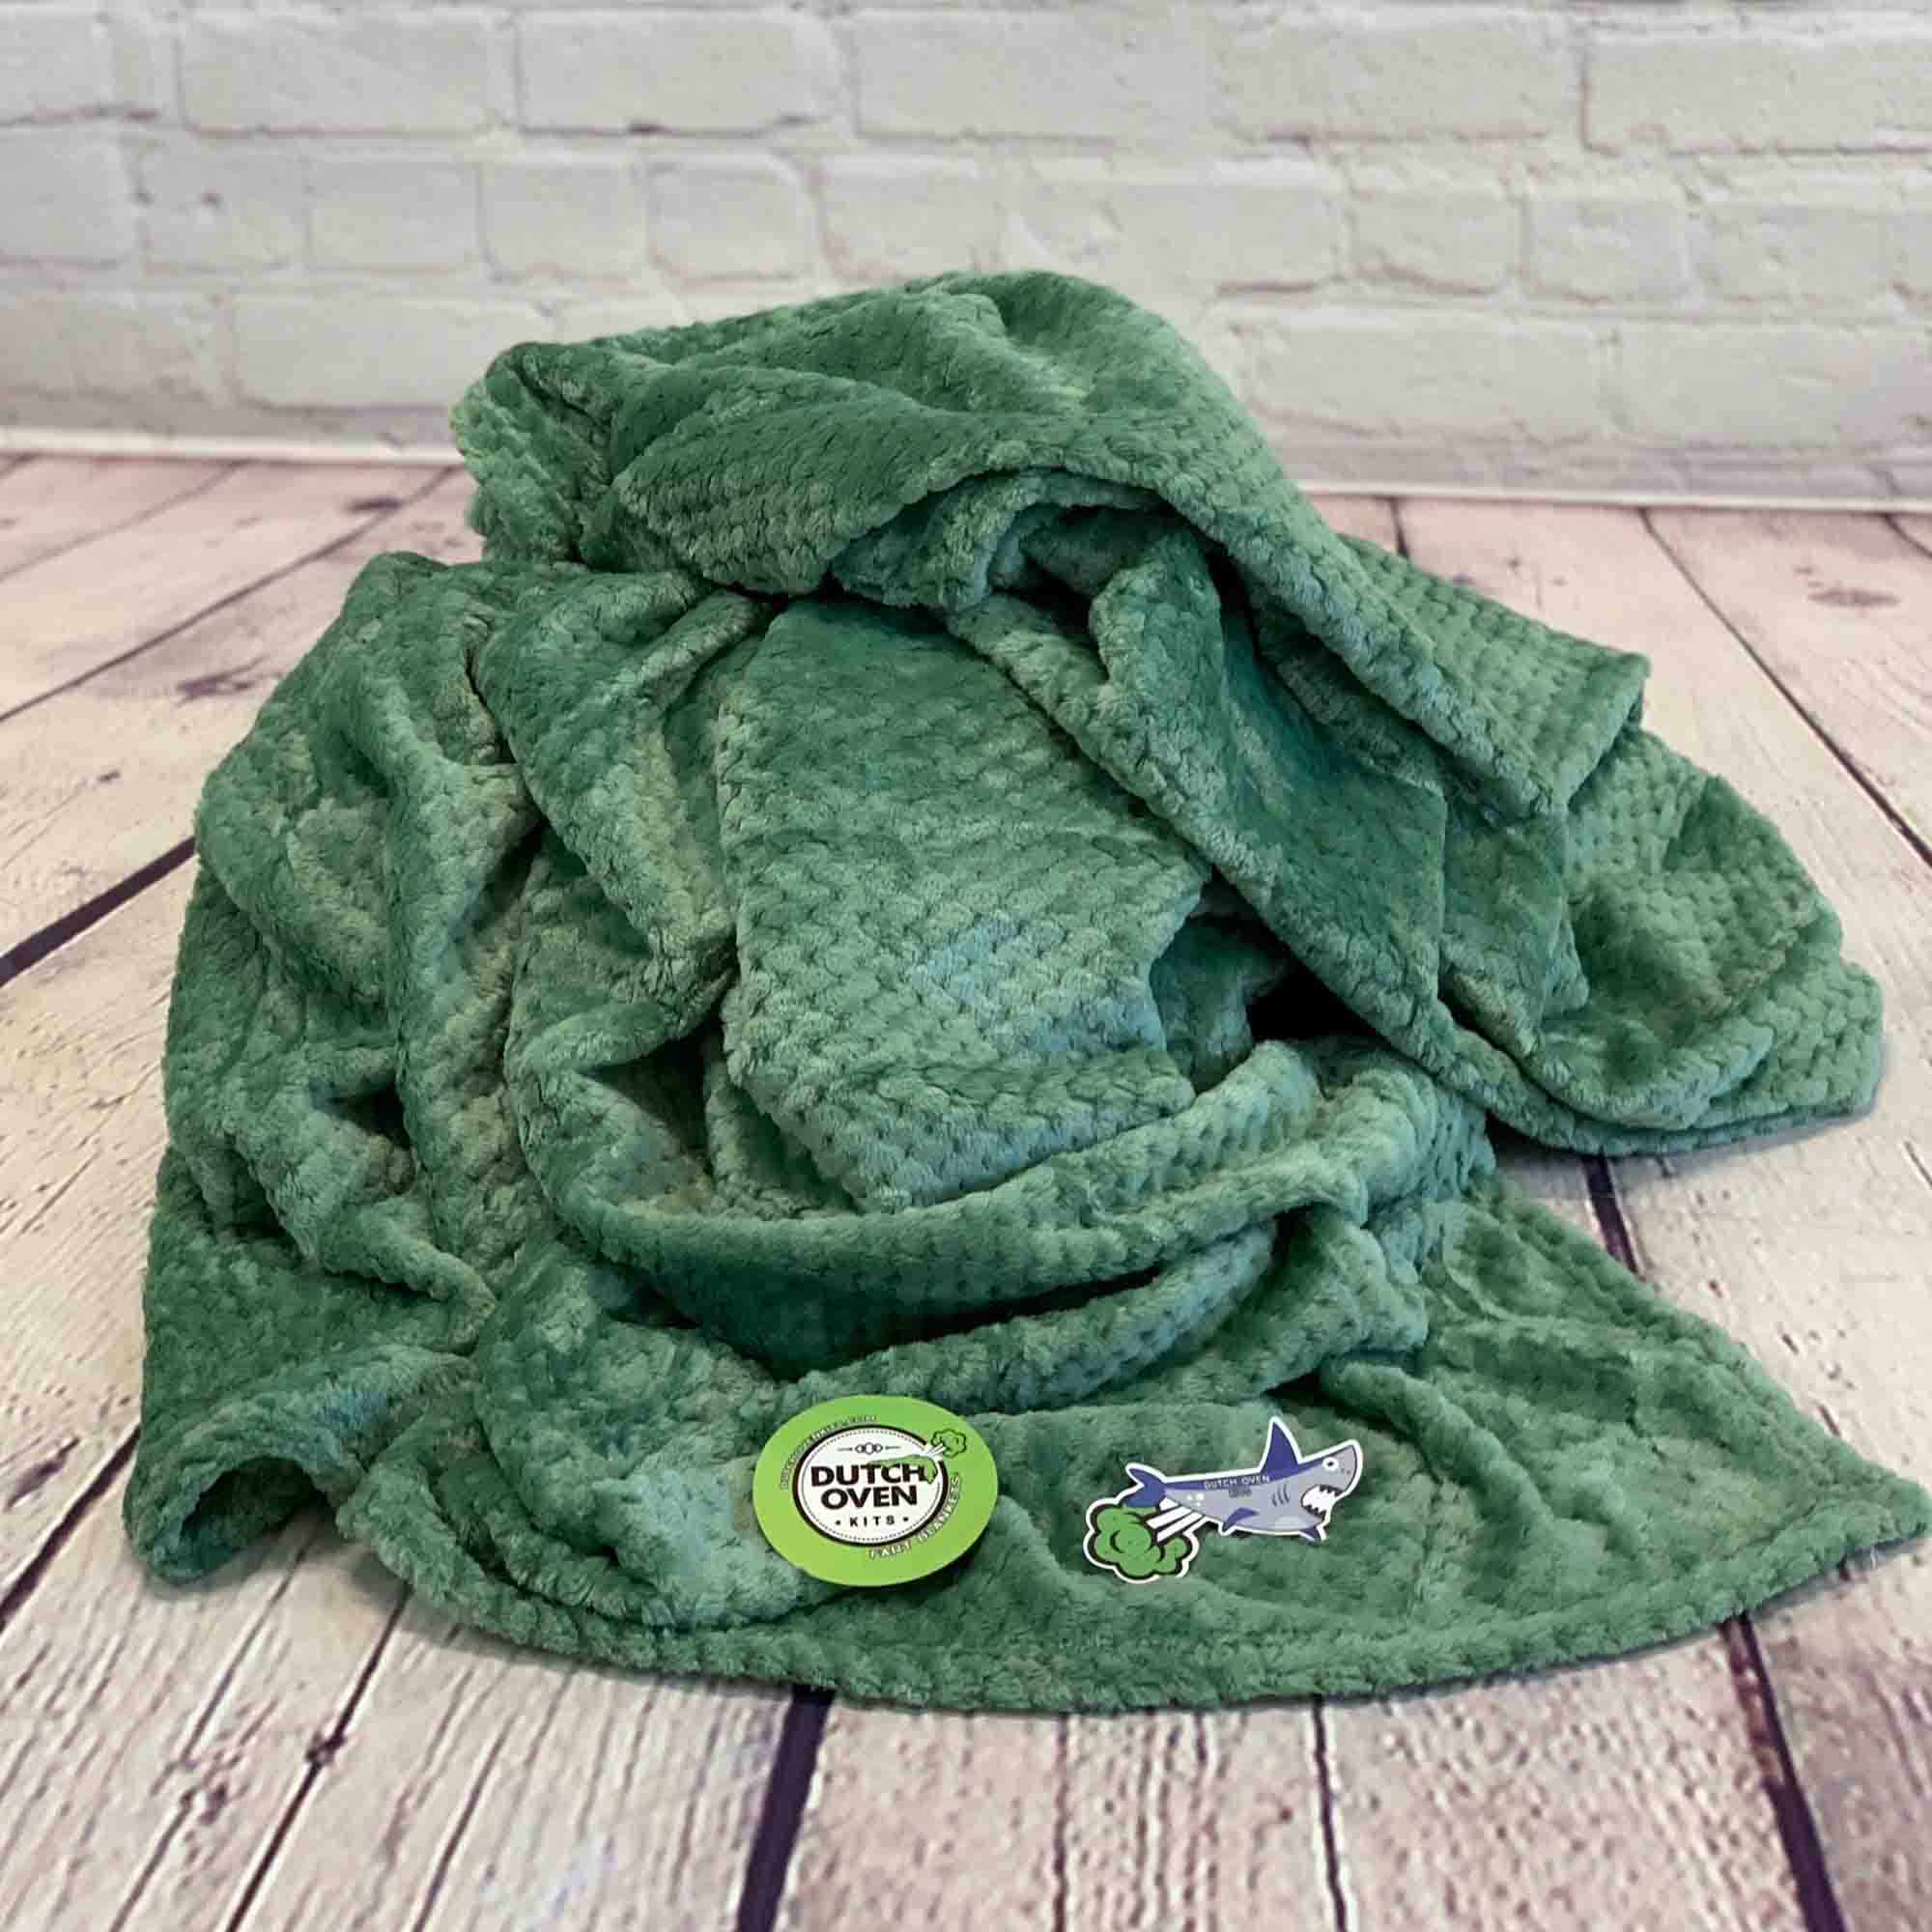 Image of a Dark Green color Microfiber fleece throw blanket on a wood plank floor